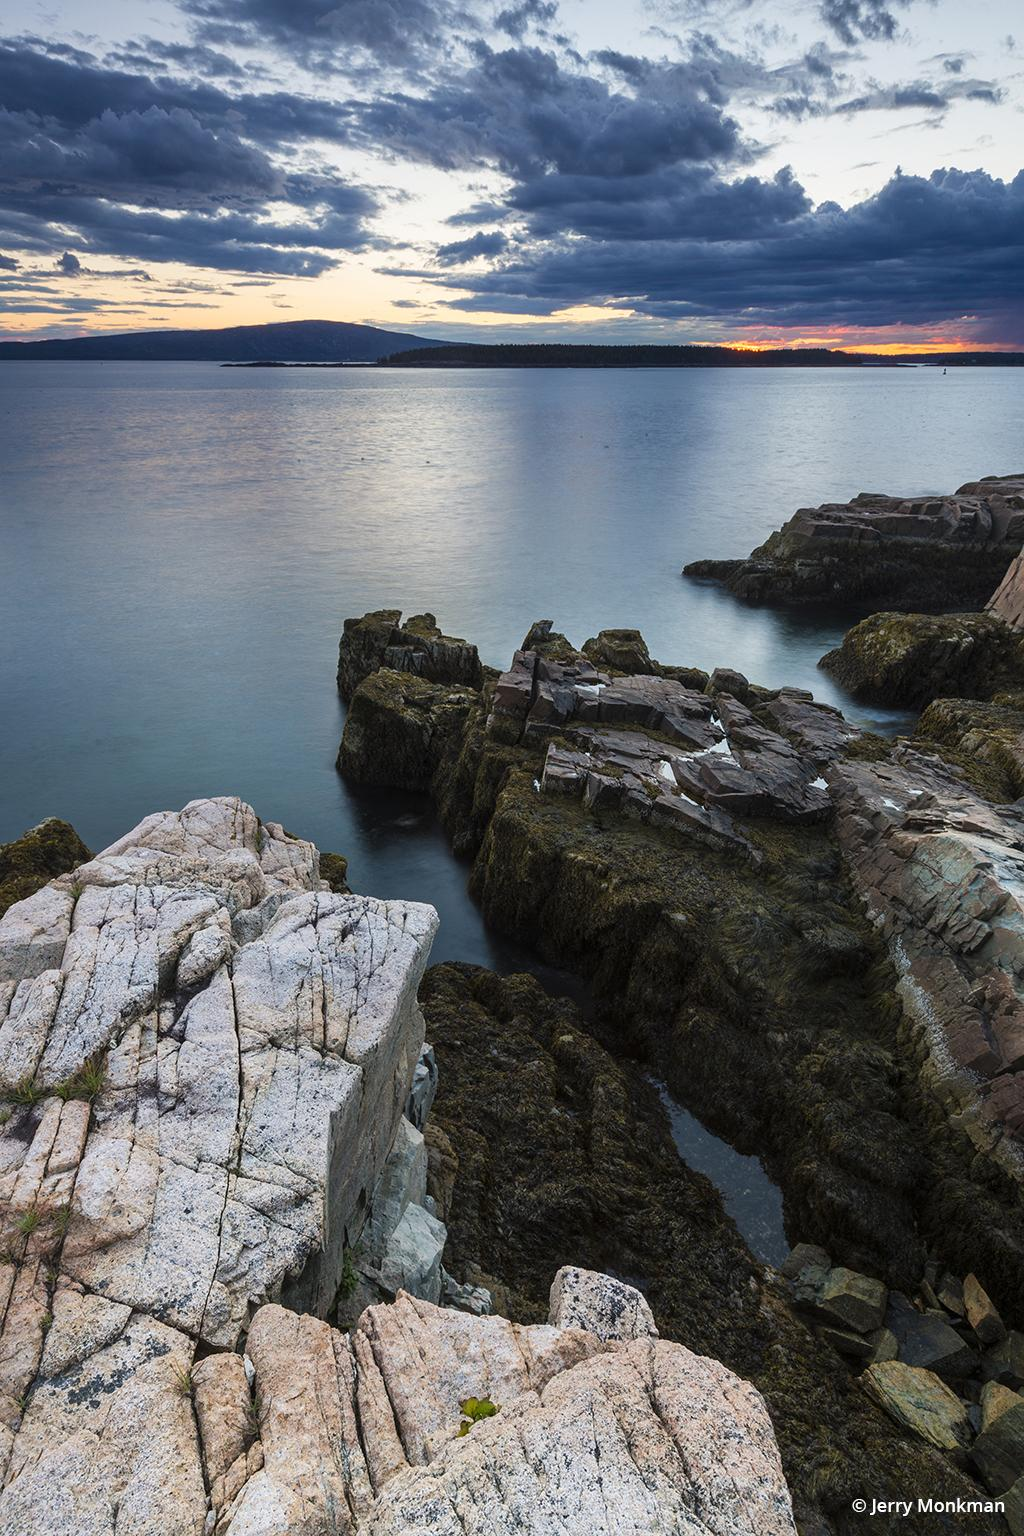 Schoodic Peninsula in Maine's Acadia National Park